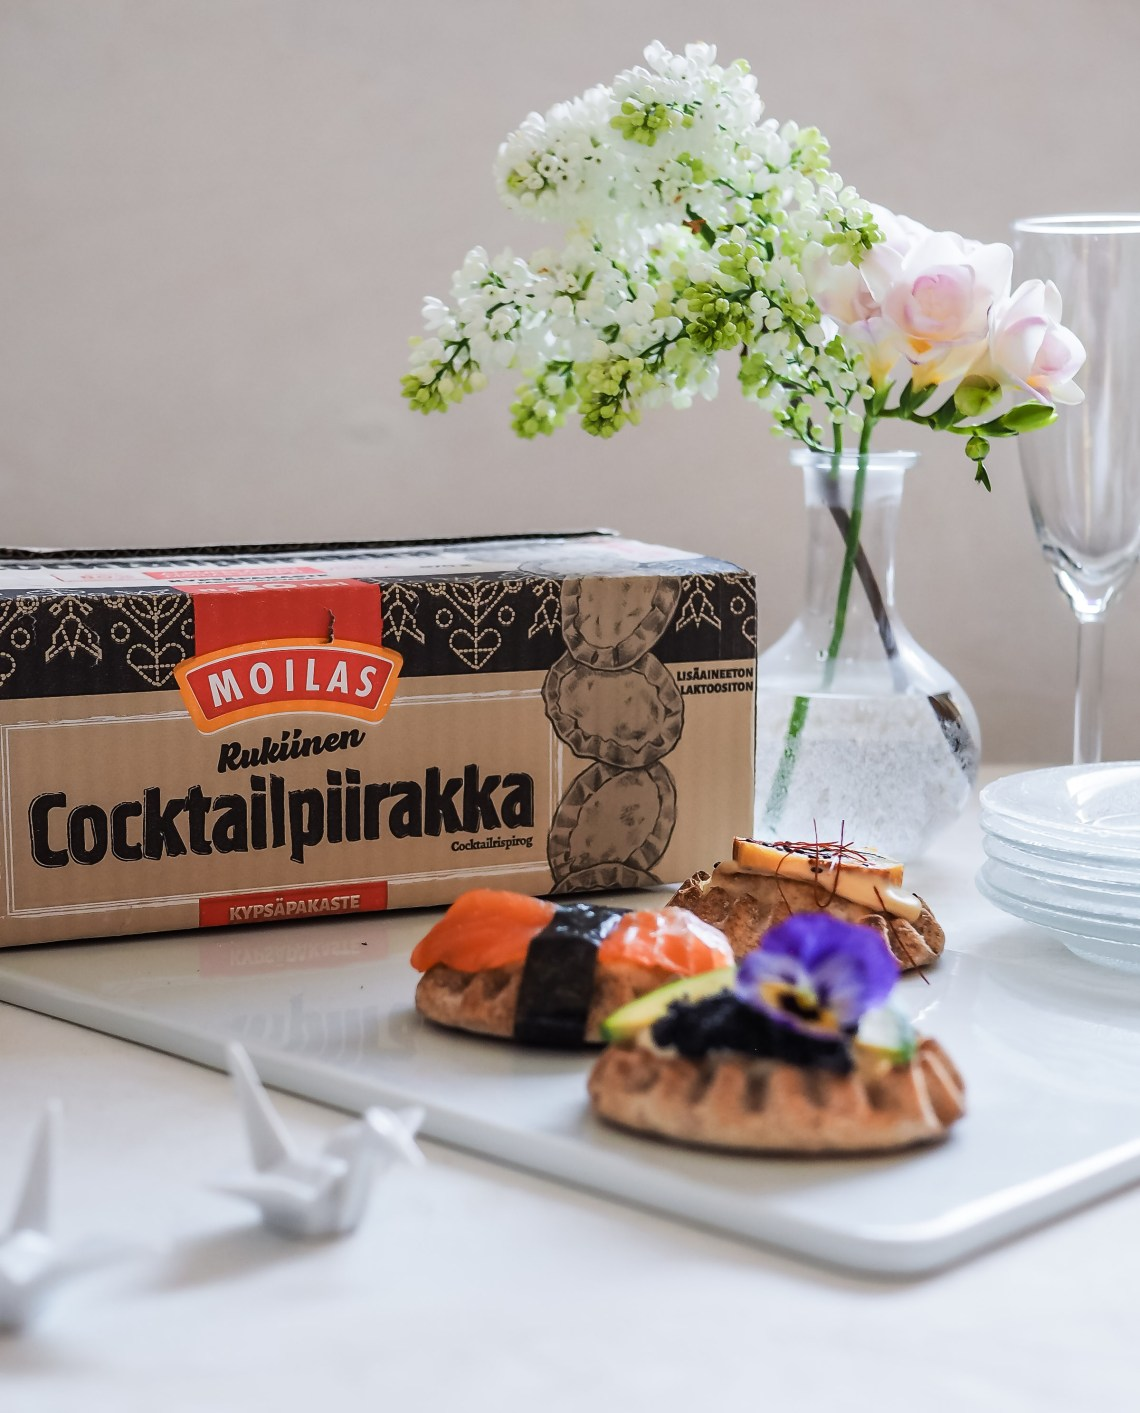 cocktailpiirakka